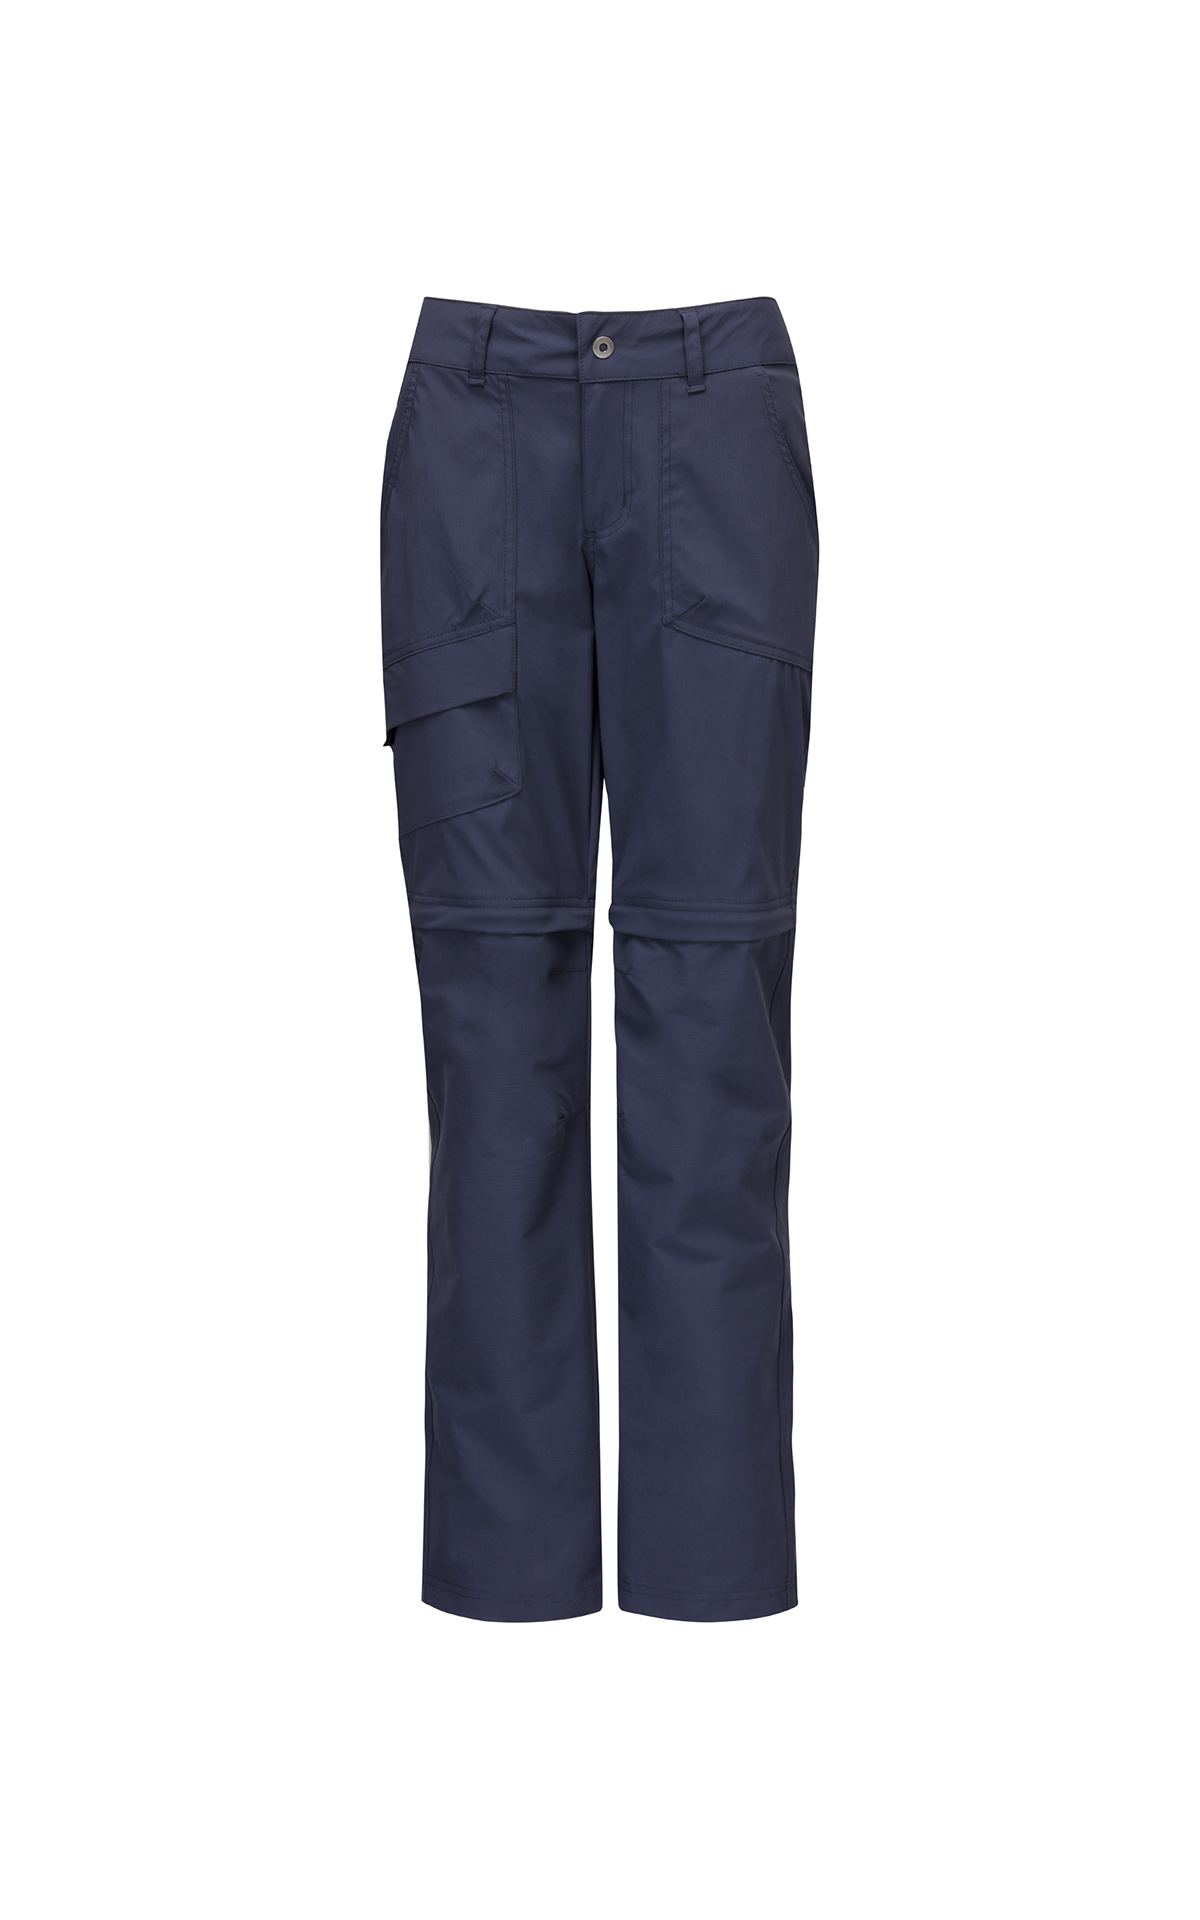 Navy blue pants Columbia